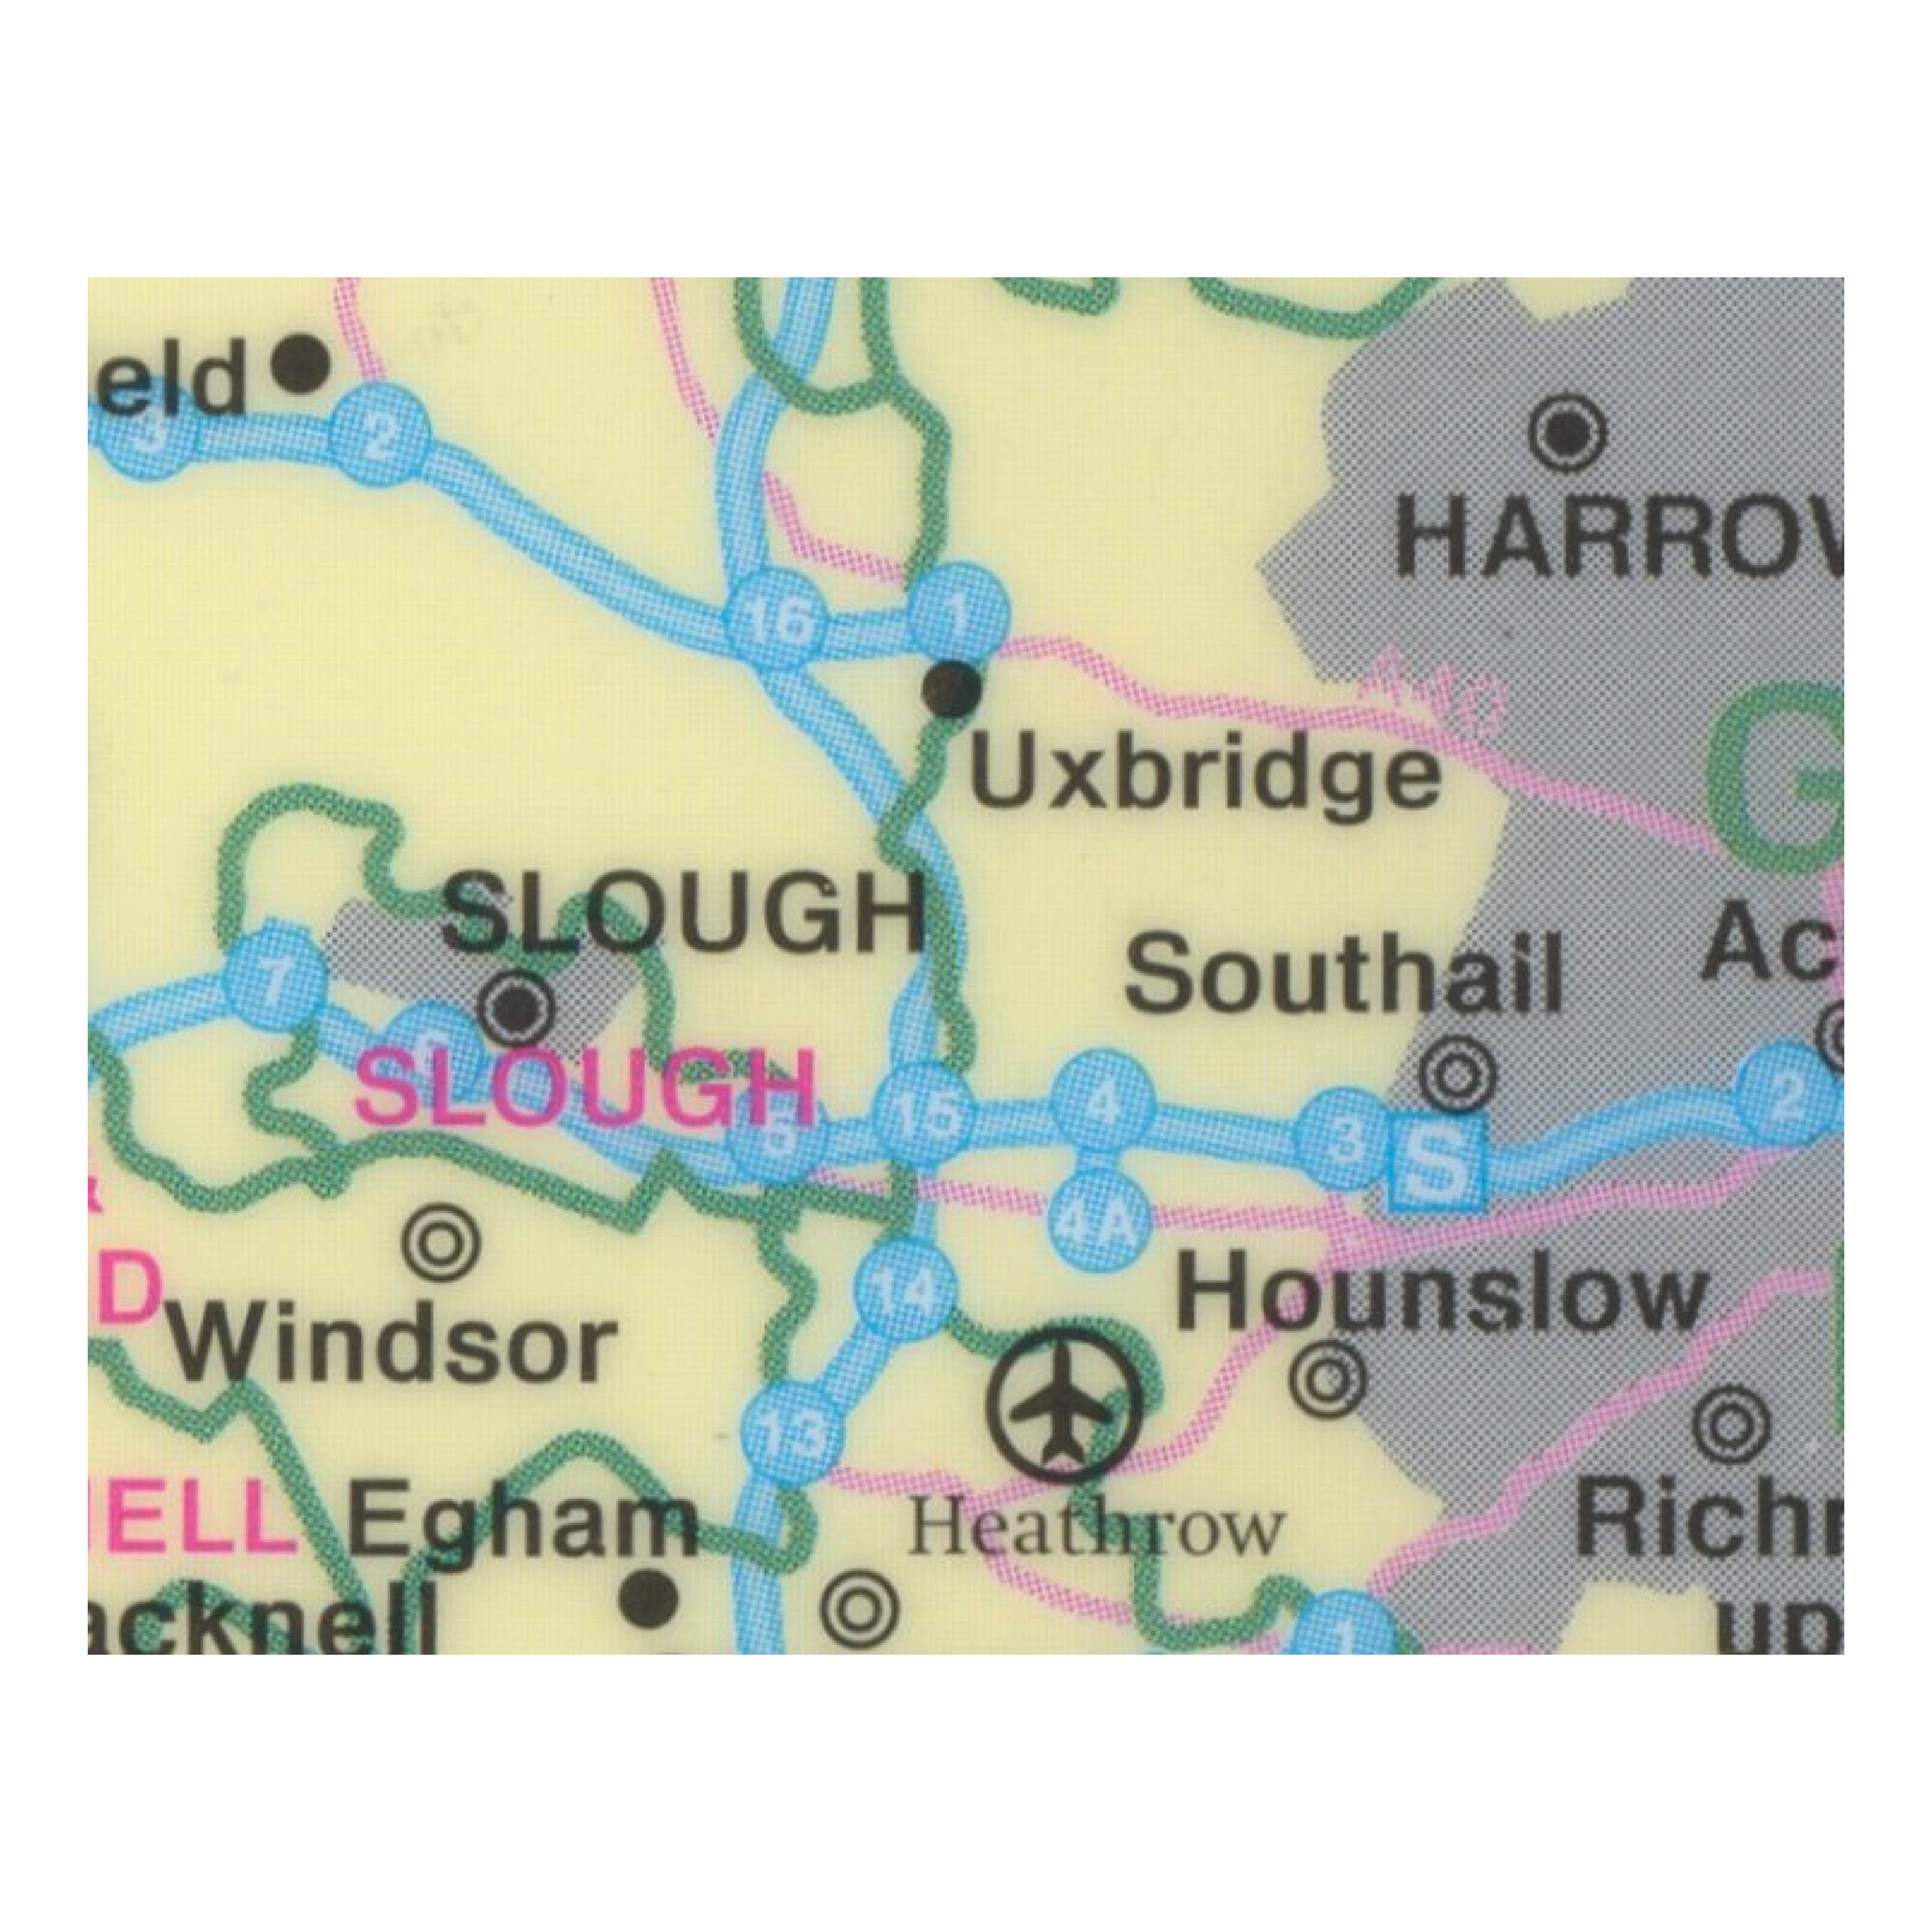 Map Marketing Sales and Marketing Map Unframed 12.5 Miles to 1 inch Scale W830xH1200mm Ref UKM